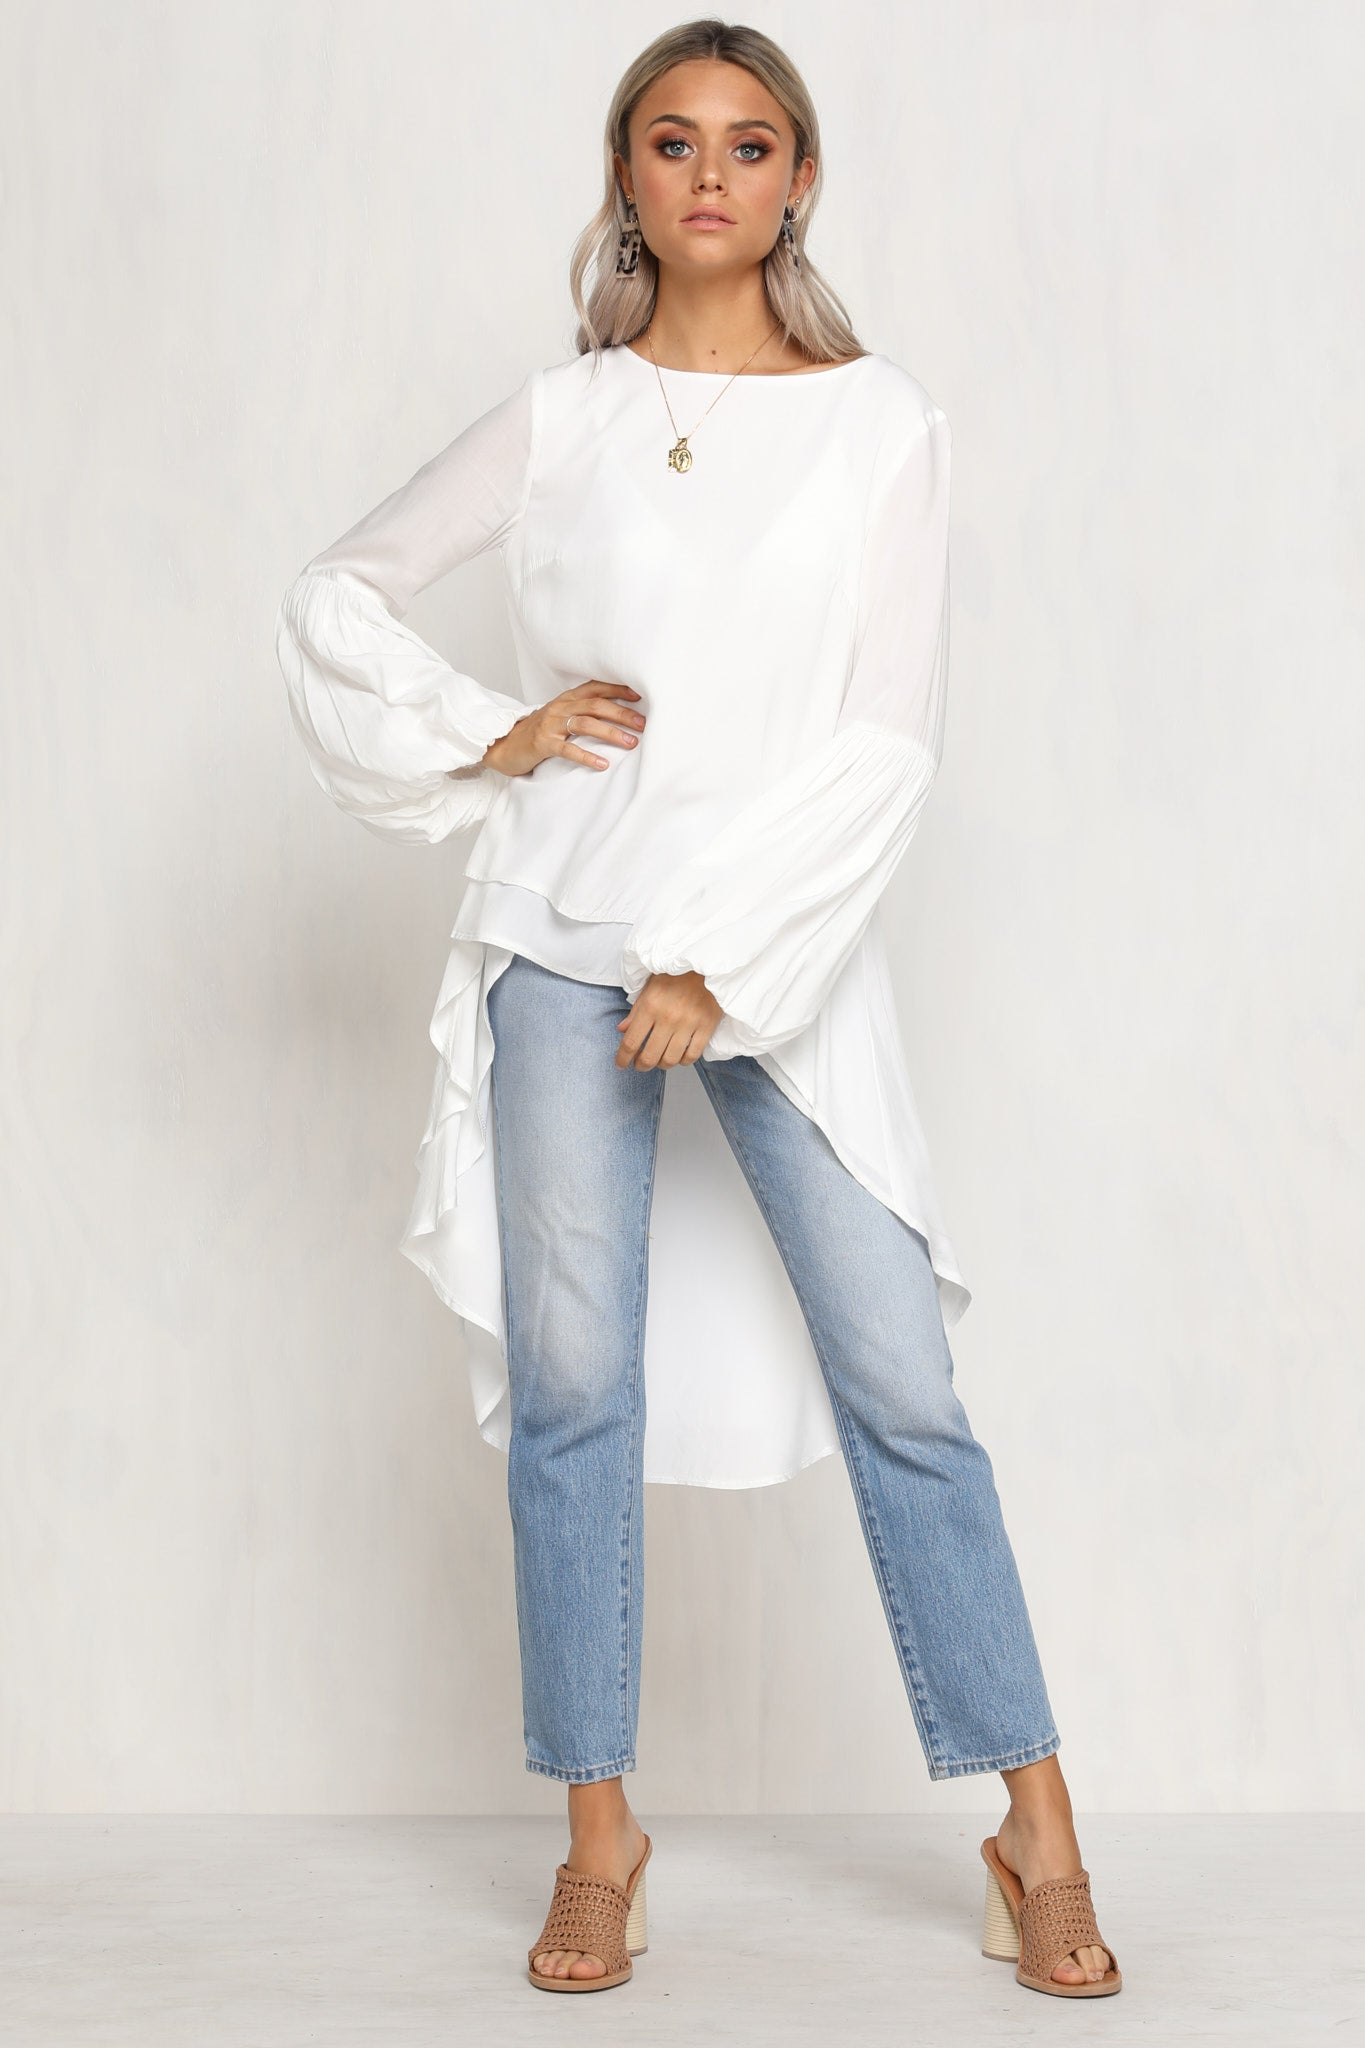 Heaven Sent Top (White)